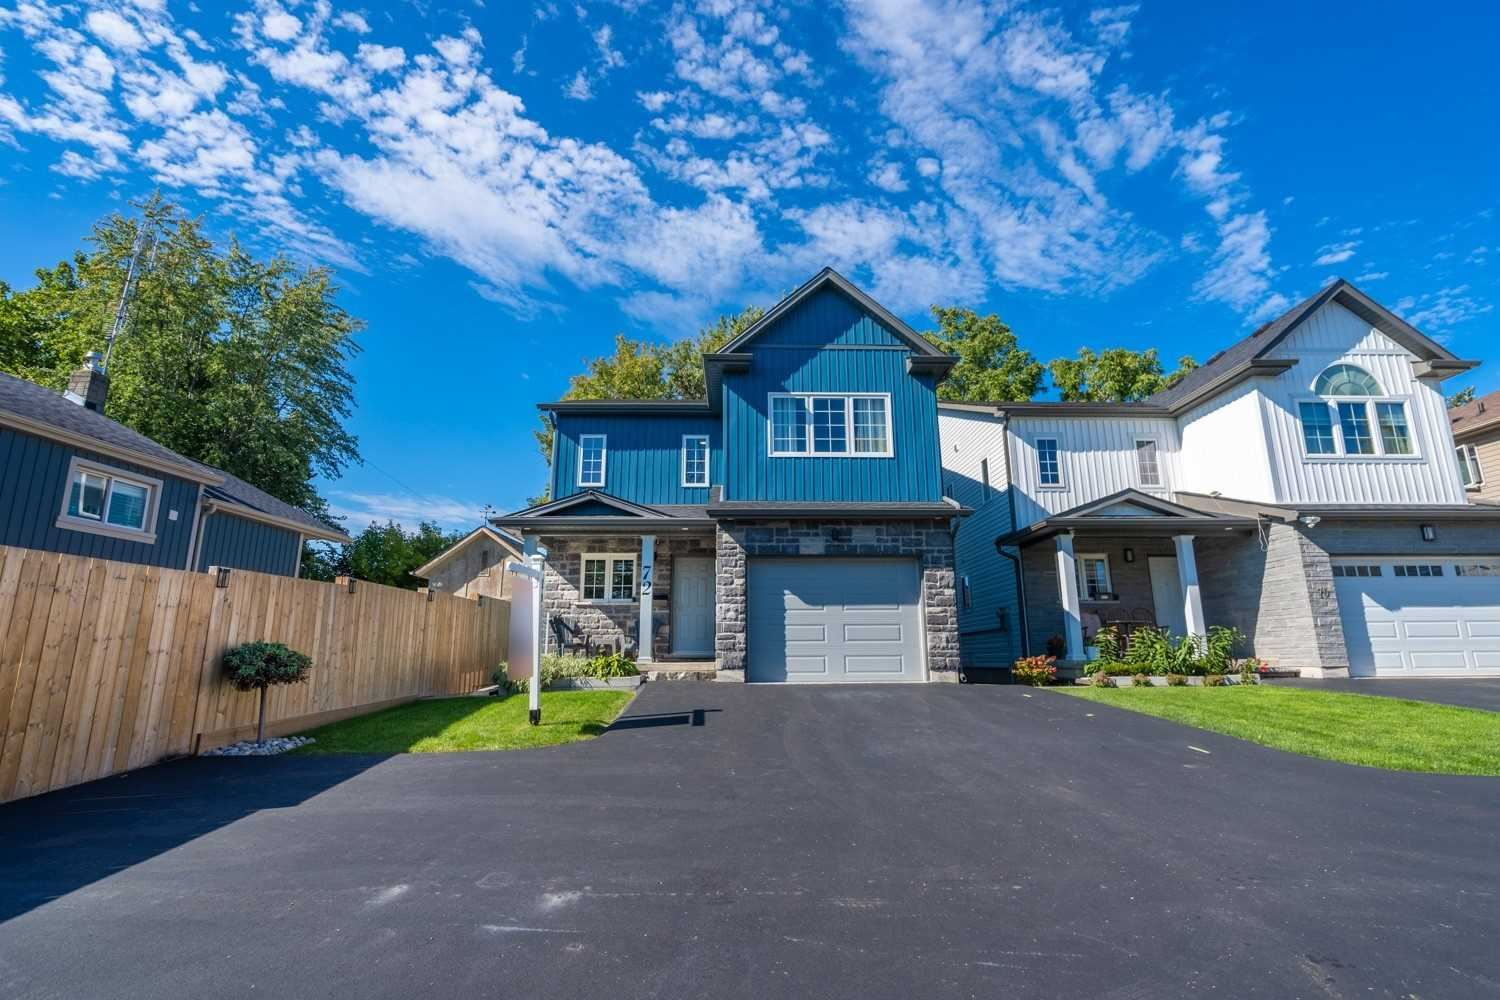 72 Hillview Ave N, St. Catharines, ON L2S 1T5 - MLS#: X5402039